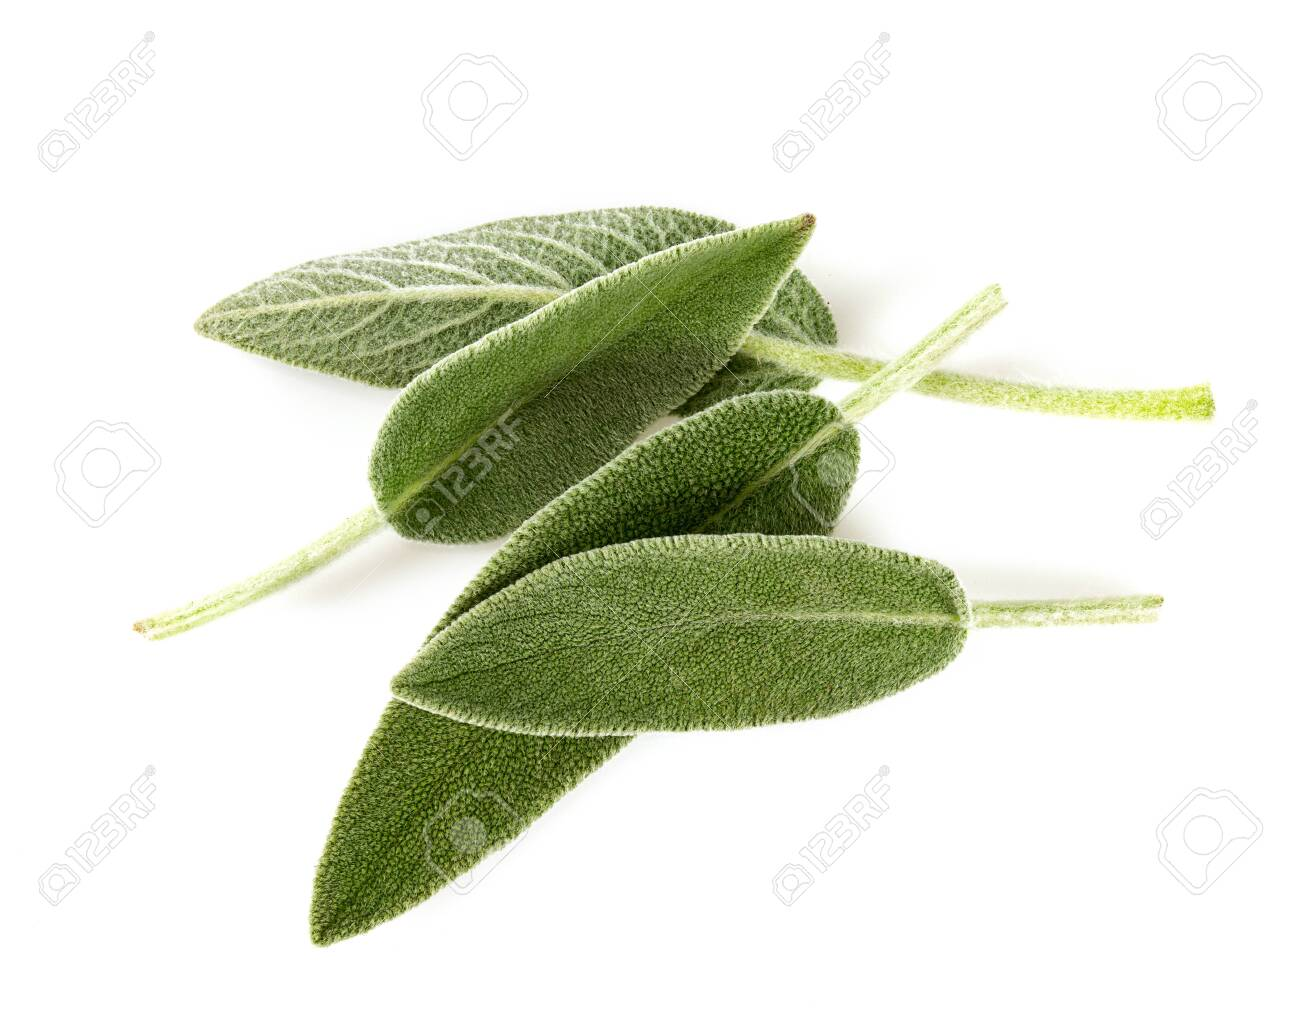 sage leaves isolated on white - 121103989